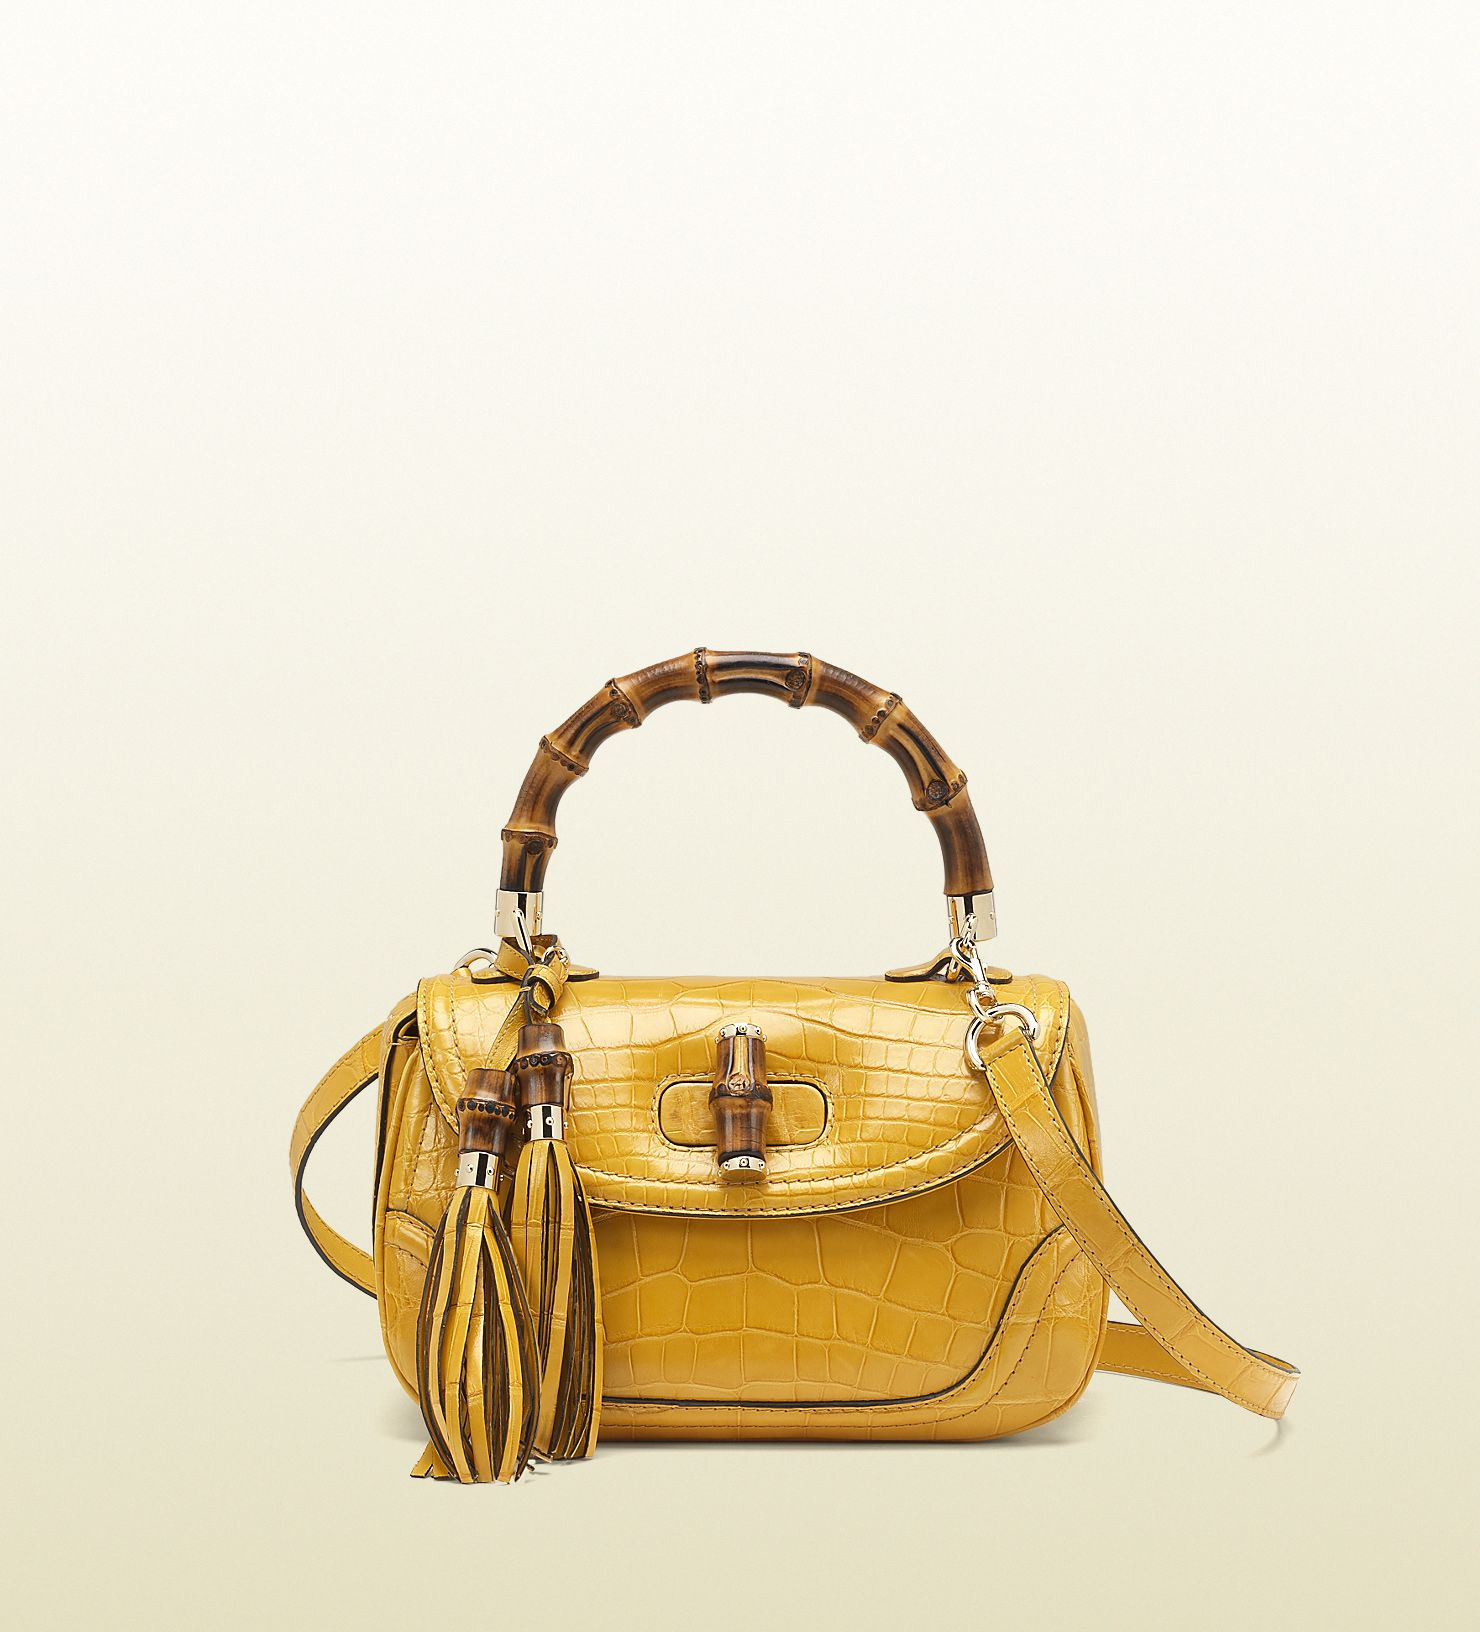 71882cfd05 Gucci - new bamboo top handle bag | Bamboo | Pinterest